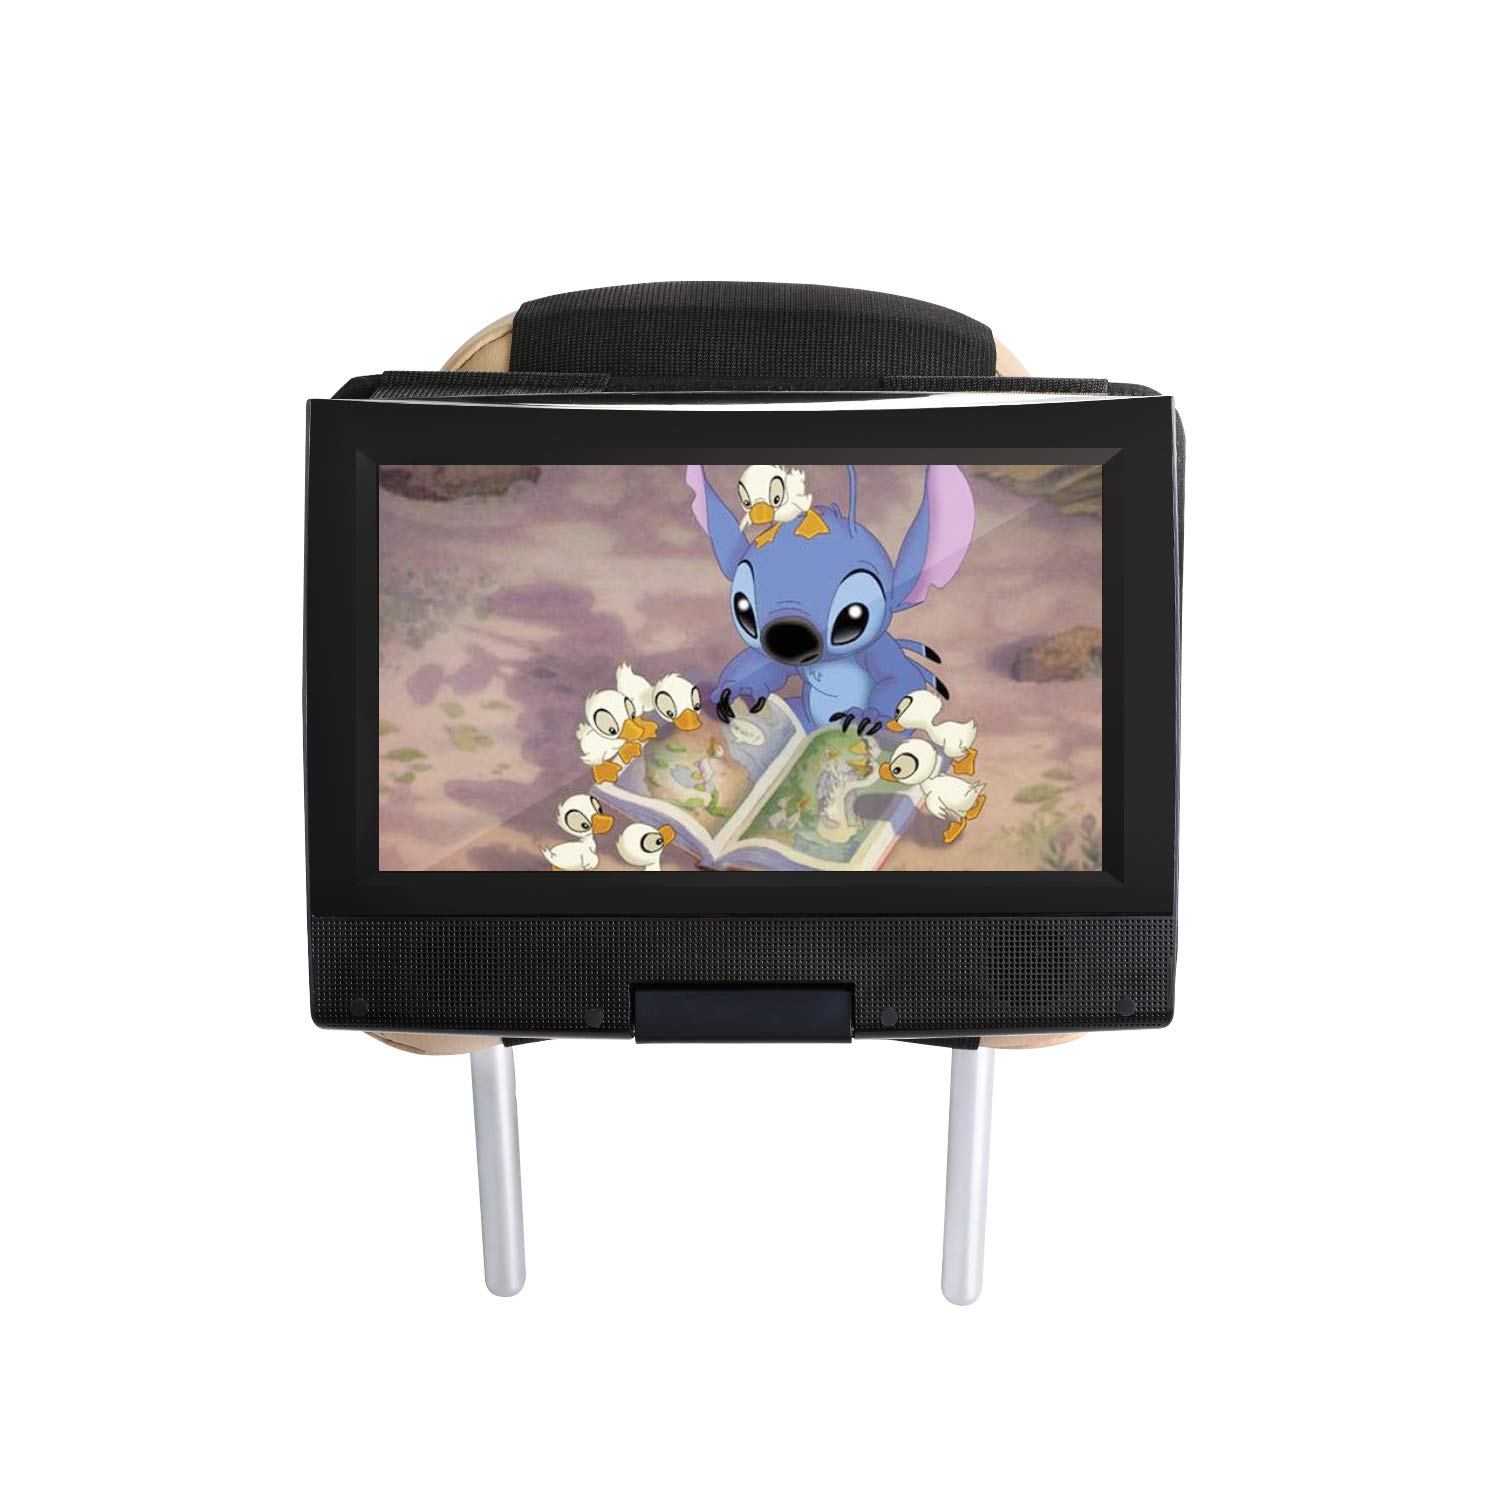 Hikig Car headrest Mount for 7 to 11 inch Swivel & Flip Style Portable DVD Player - Black